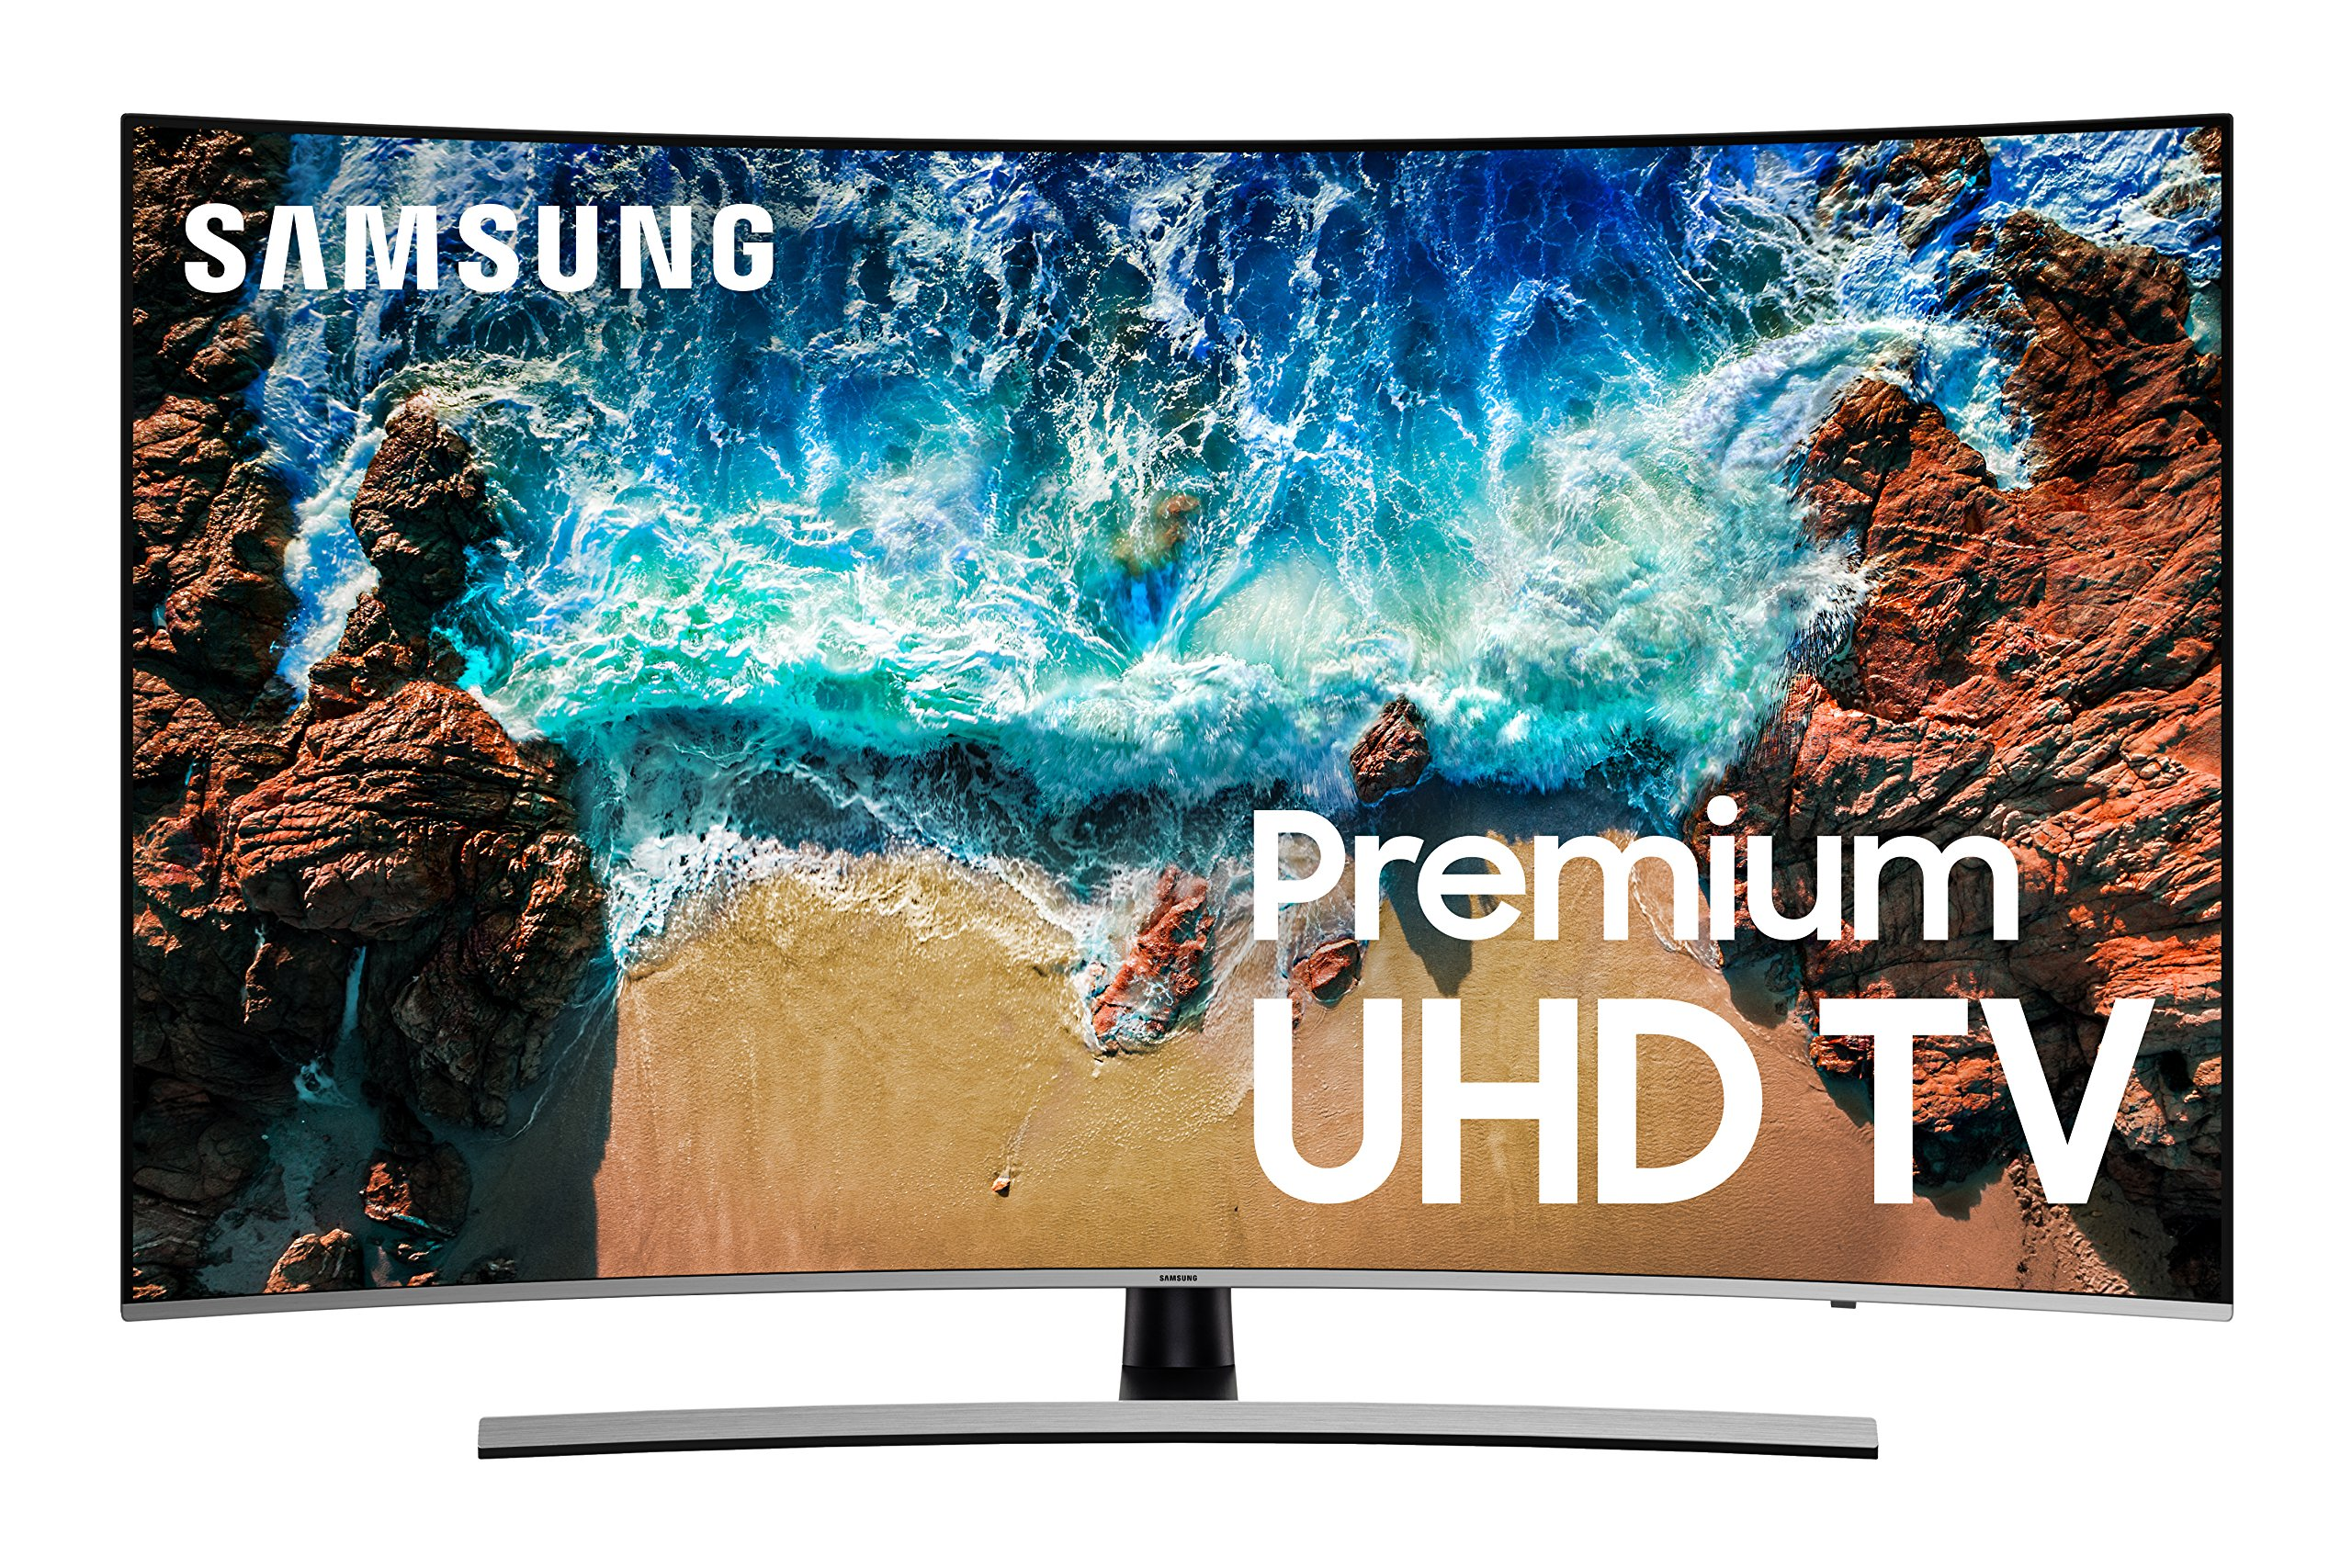 Samsung Curved 4K UHD 8 Series Smart LED TV (2018) - A1sathsdYqL - Samsung Curved 4K UHD 8 Series Smart LED TV (2018)